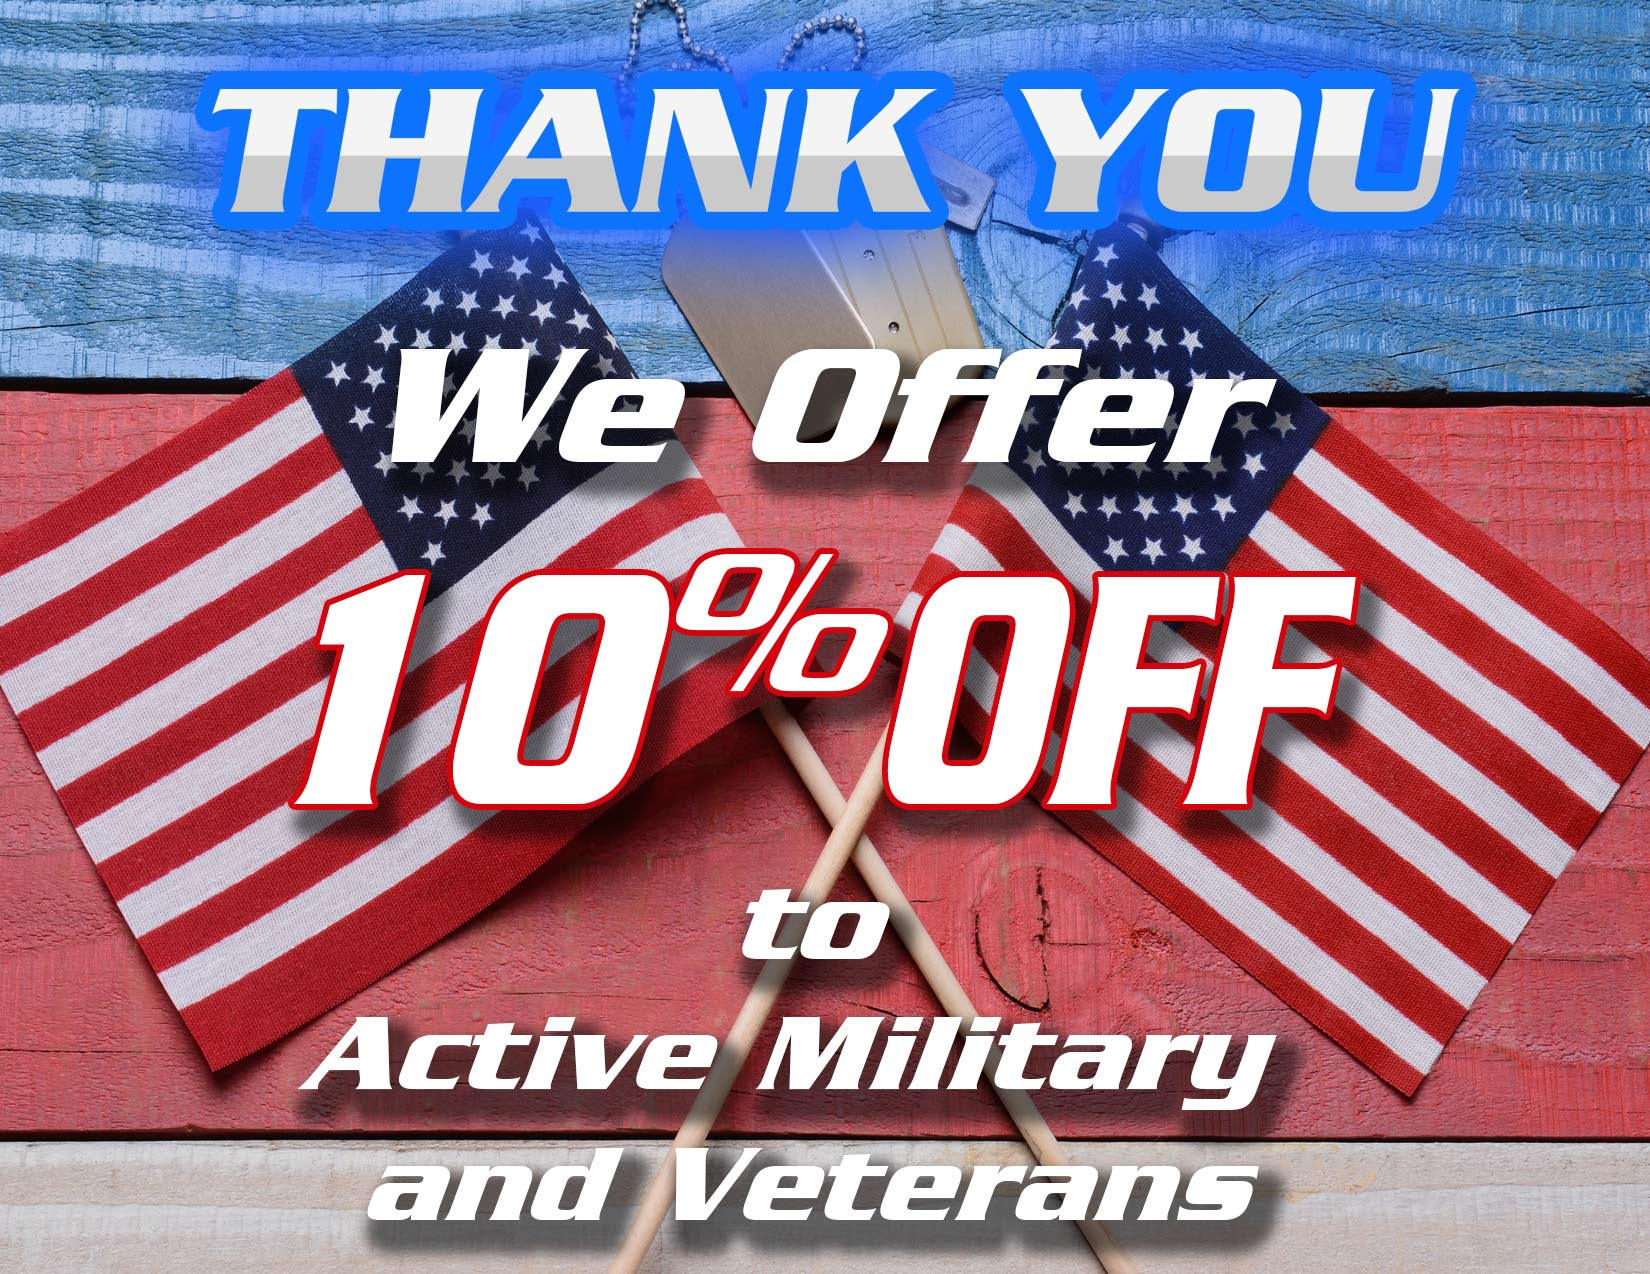 Veterans and Active Military 10% off